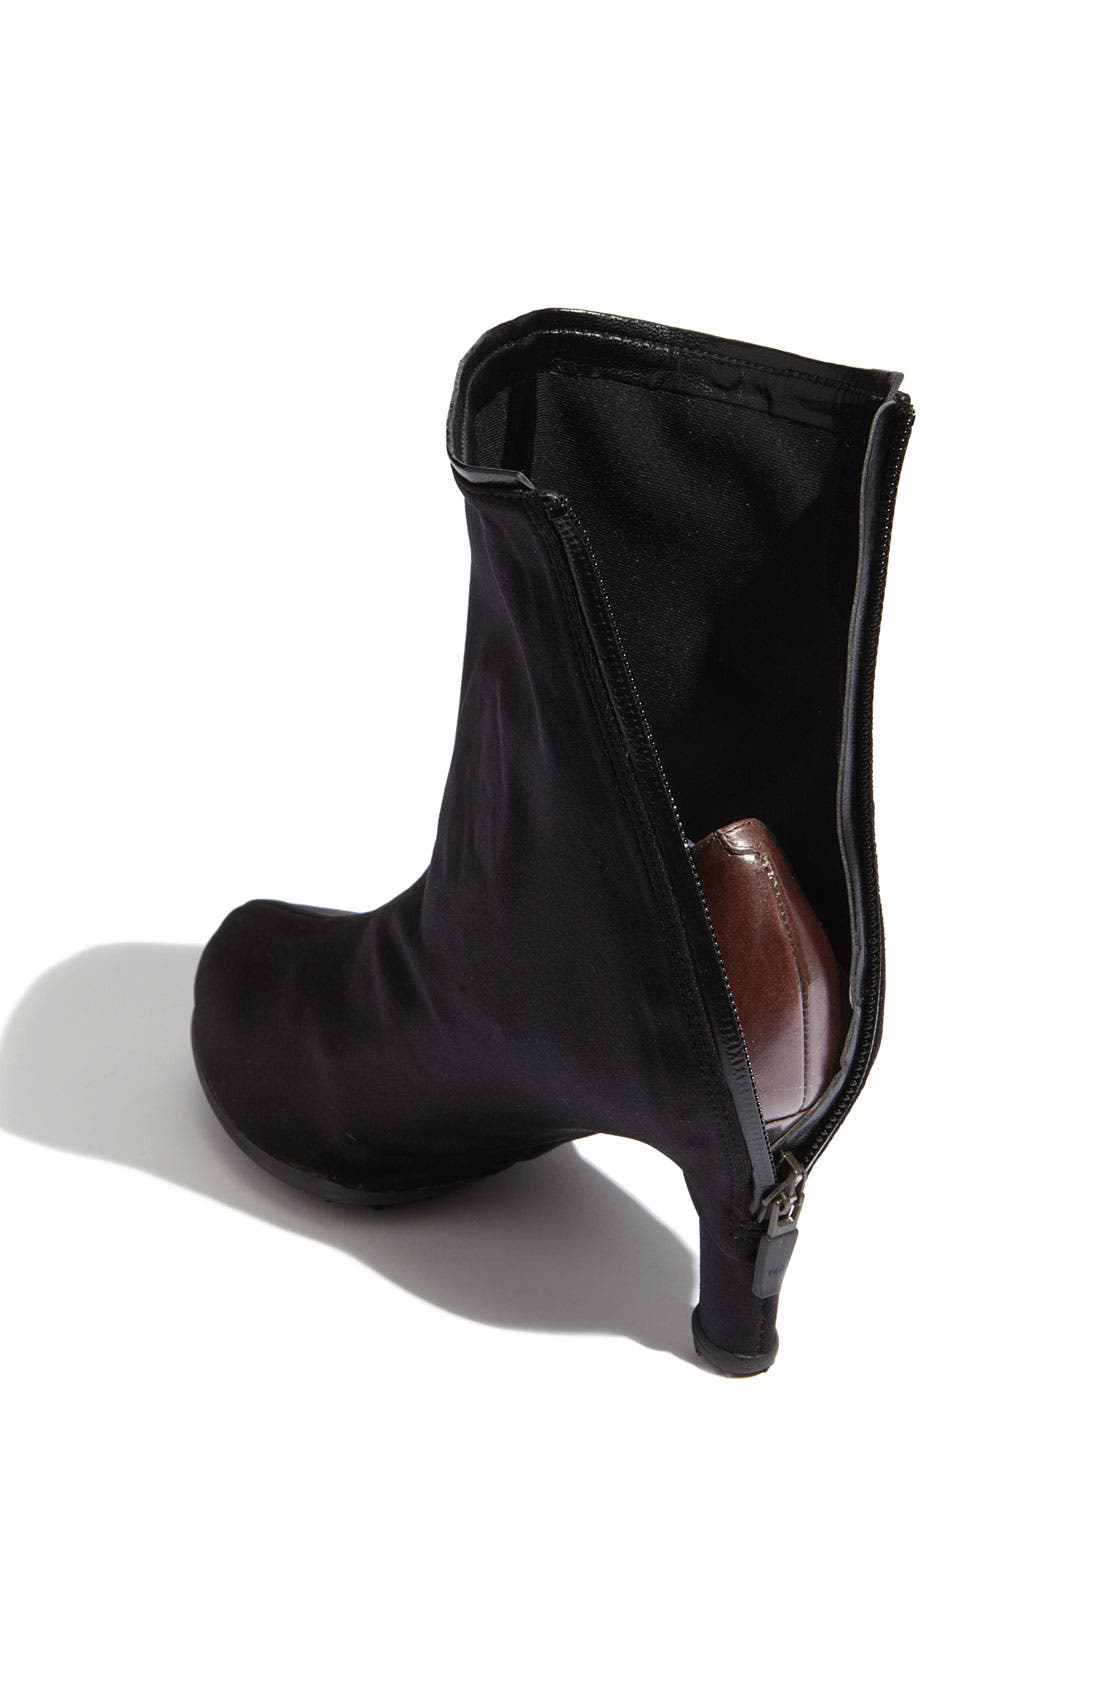 Alternate Image 2  - Grace Carter 'High Round' Shoe Cover